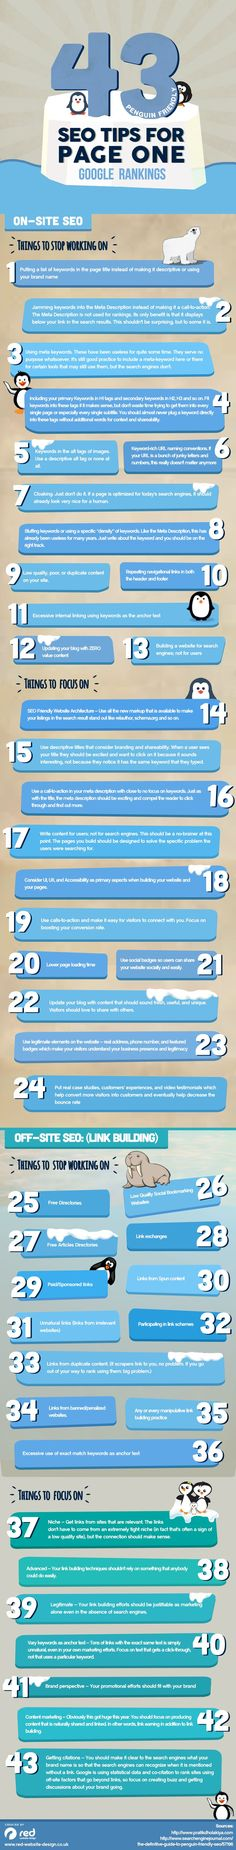 43 Penguin Friendly SEO Tips for Page One Google Rankings #infographic